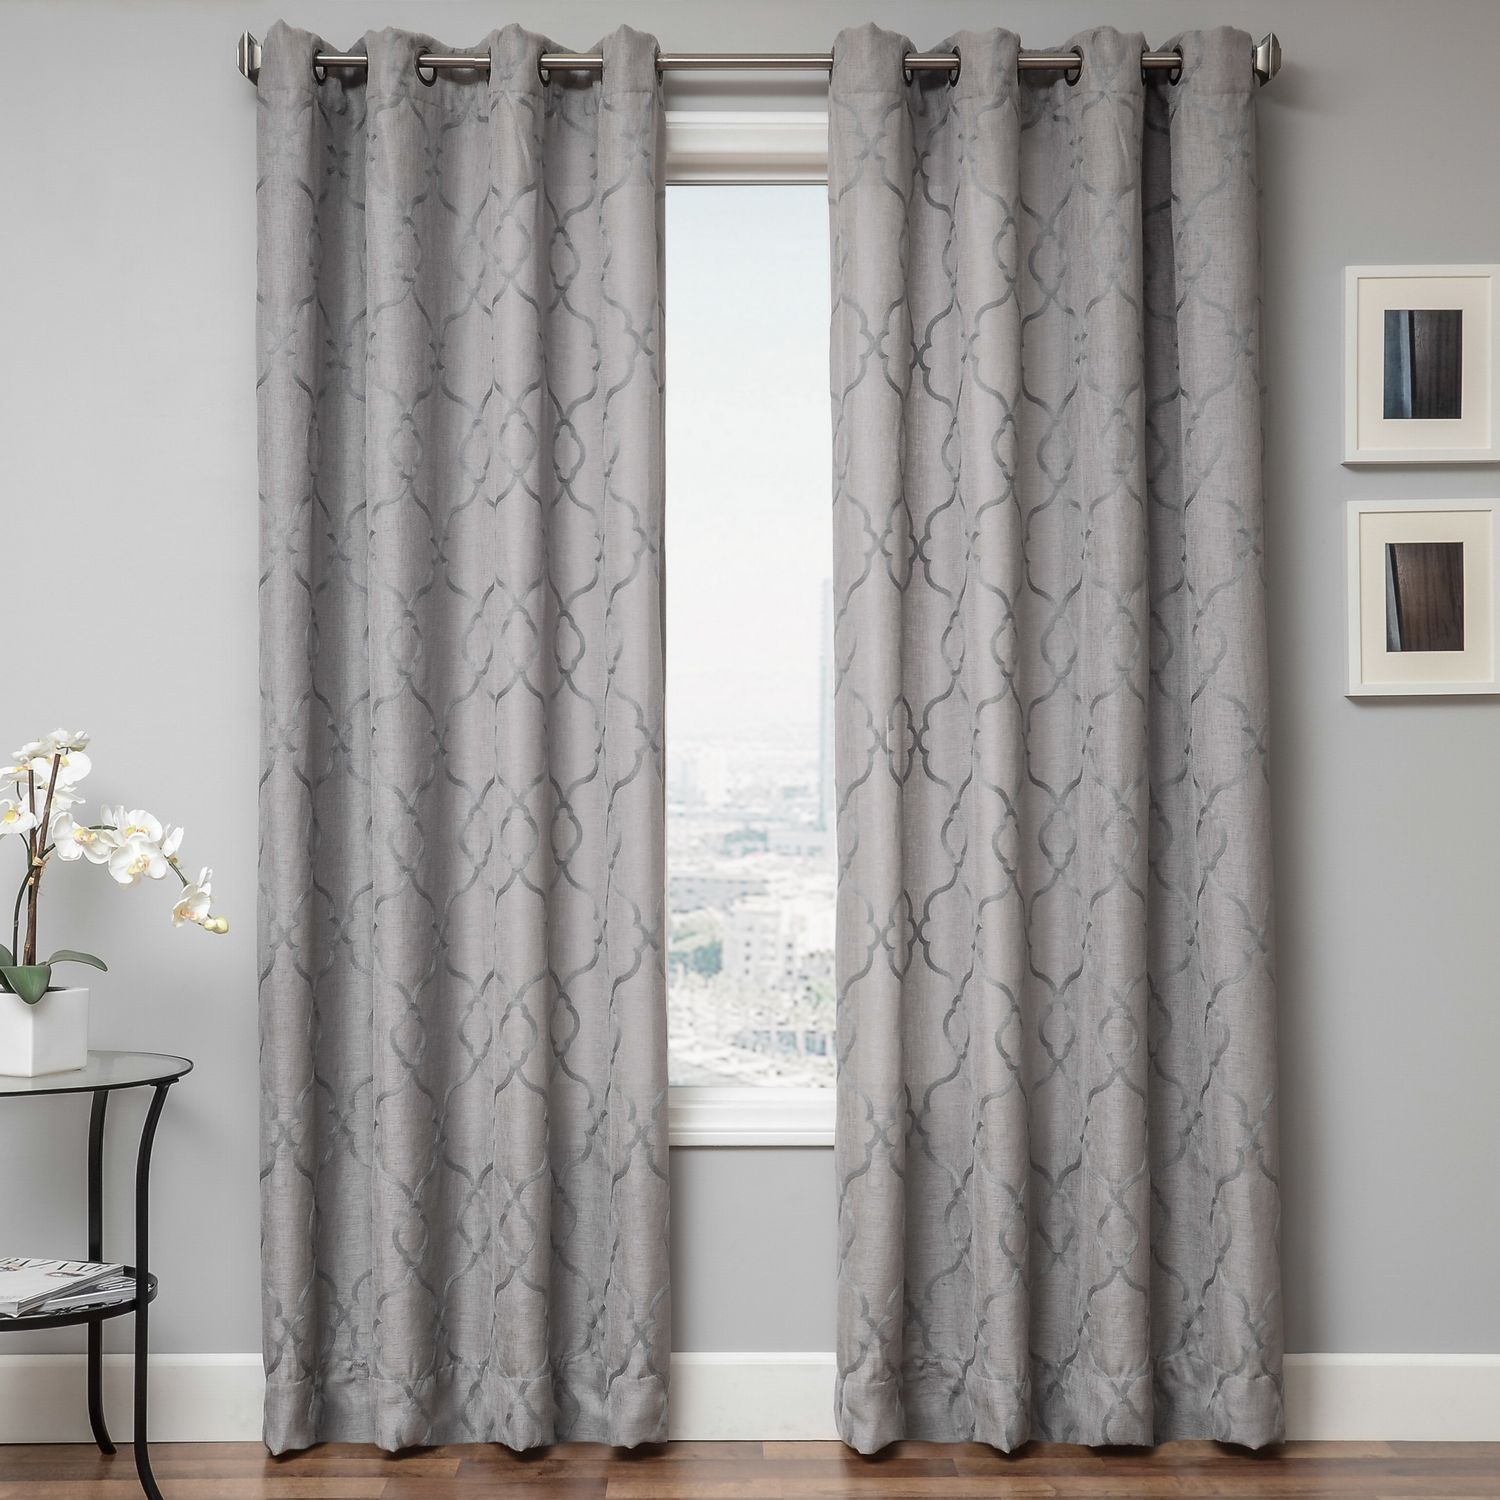 buy heavy curtain curtains linen barley halfpricedrapes drapes fhlch ivory faux